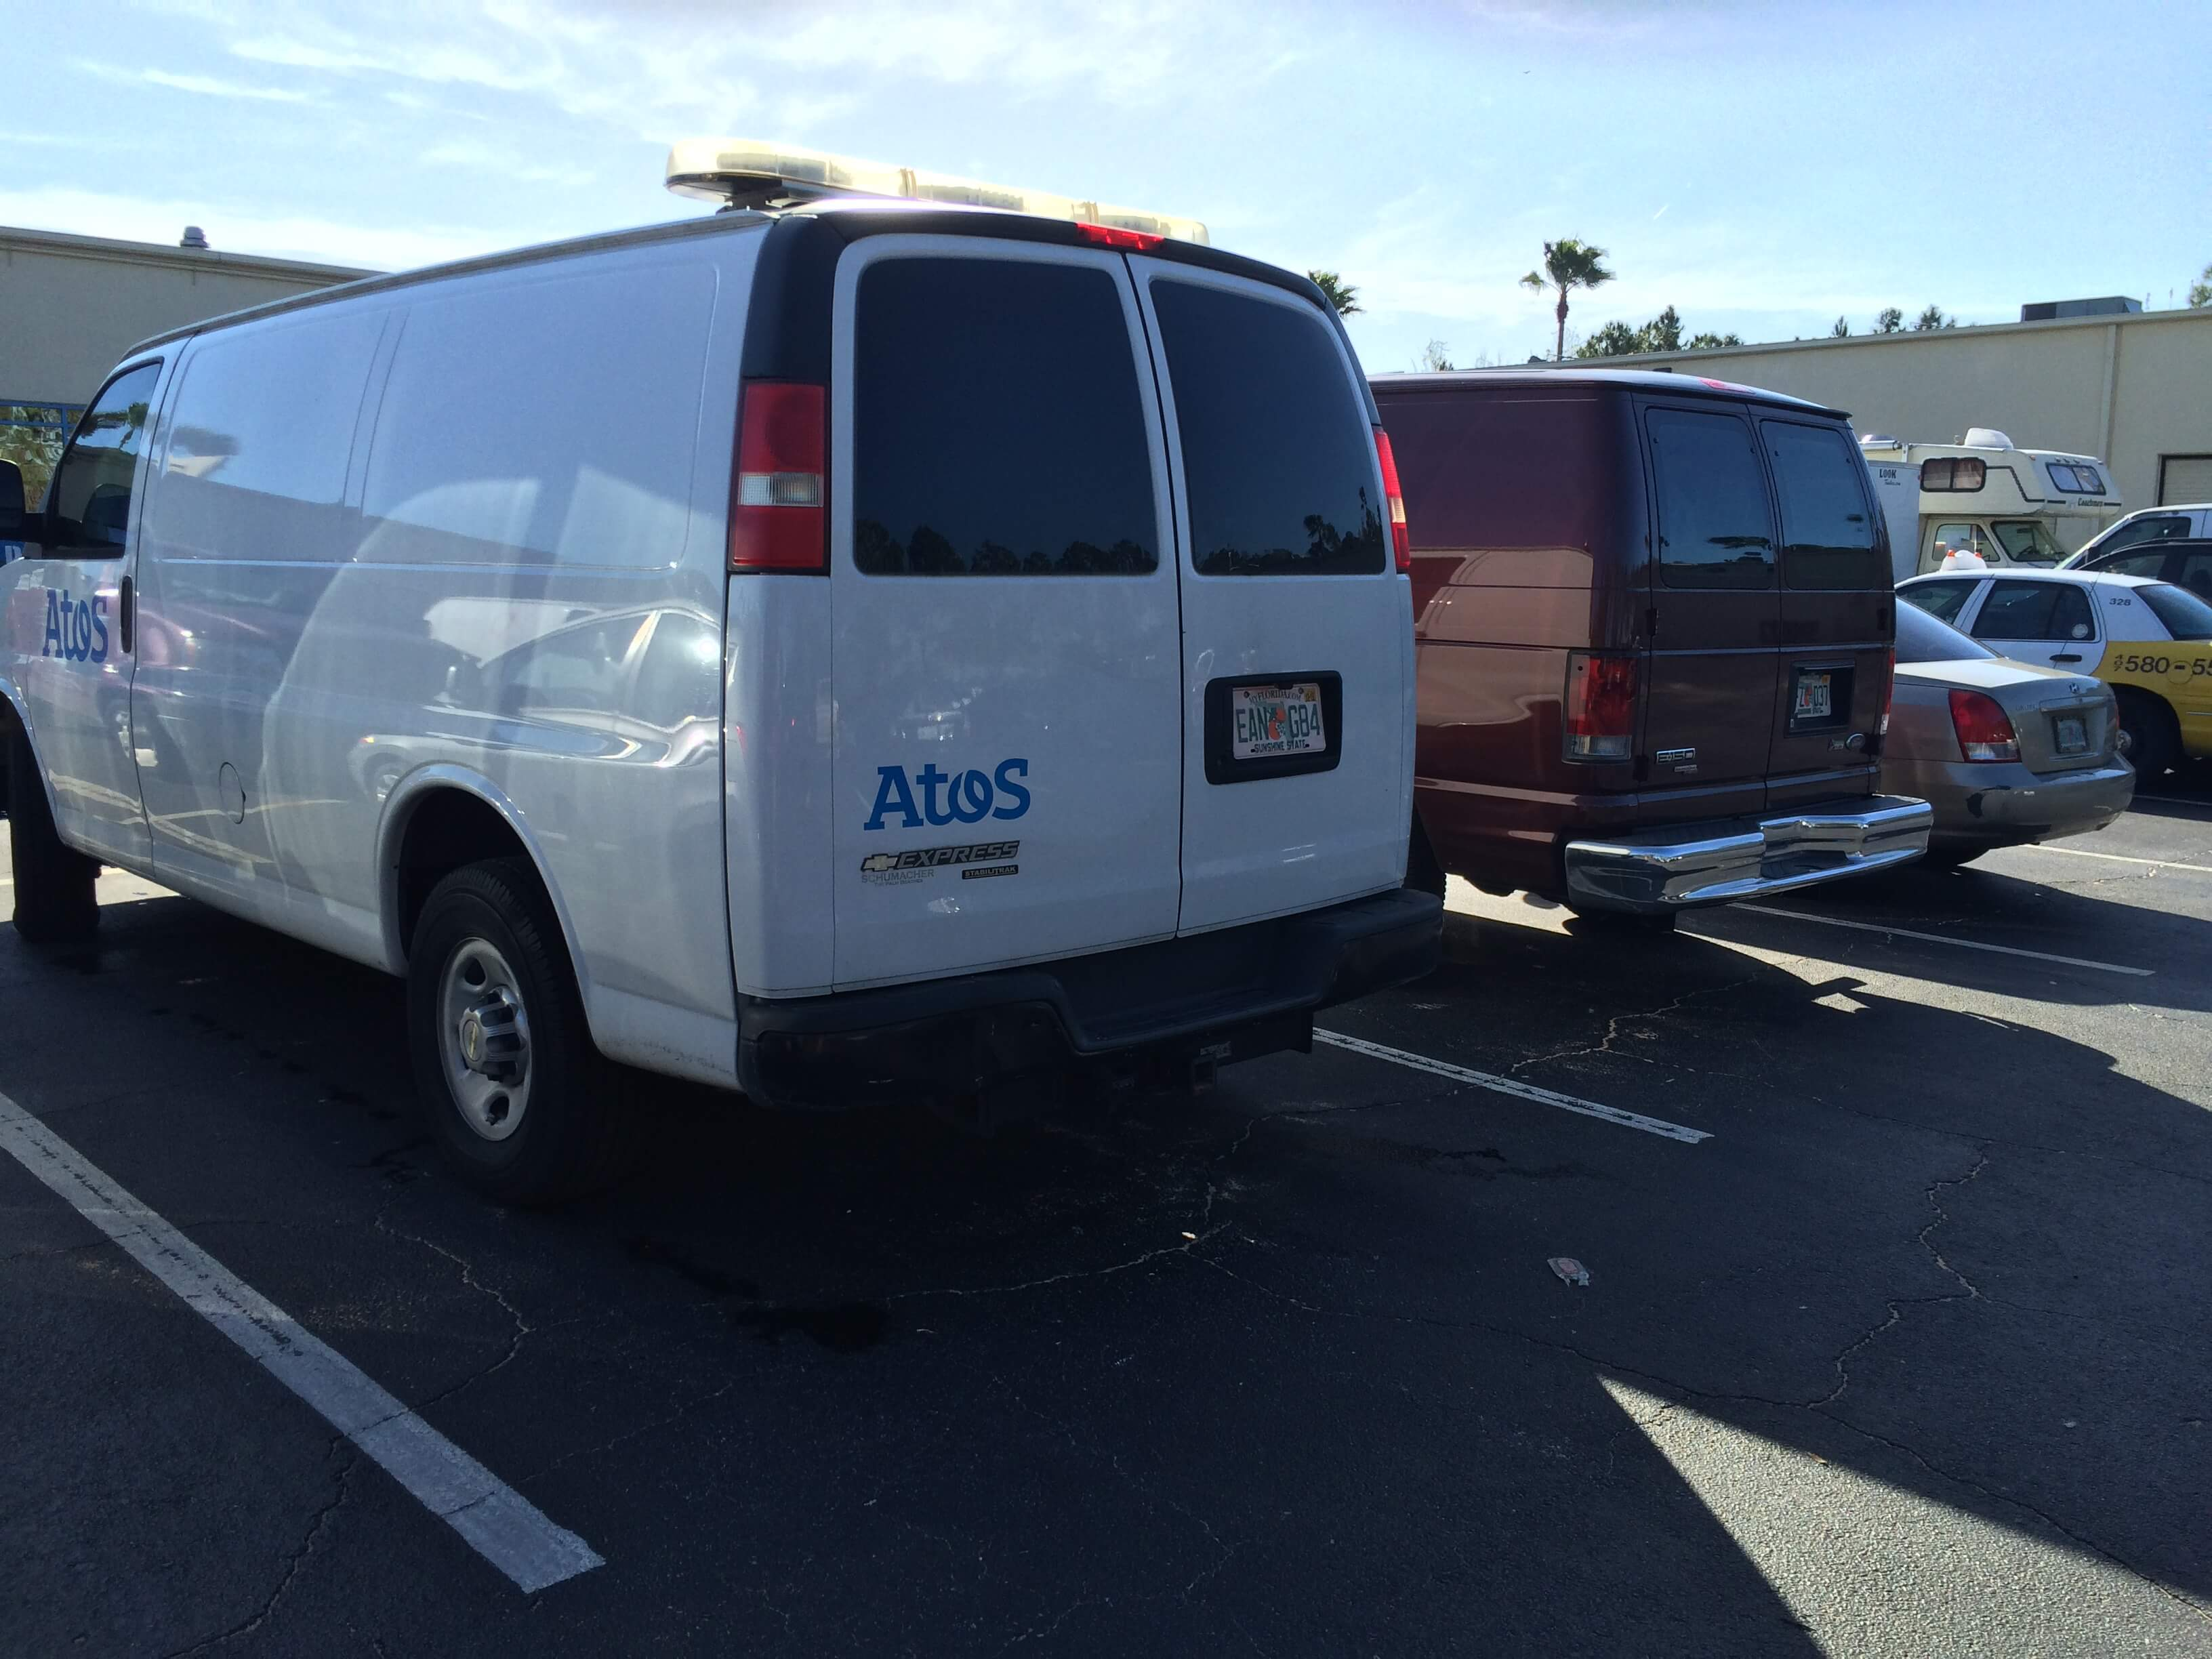 Atos Rebrands with Vehicle Graphics in Orlando!